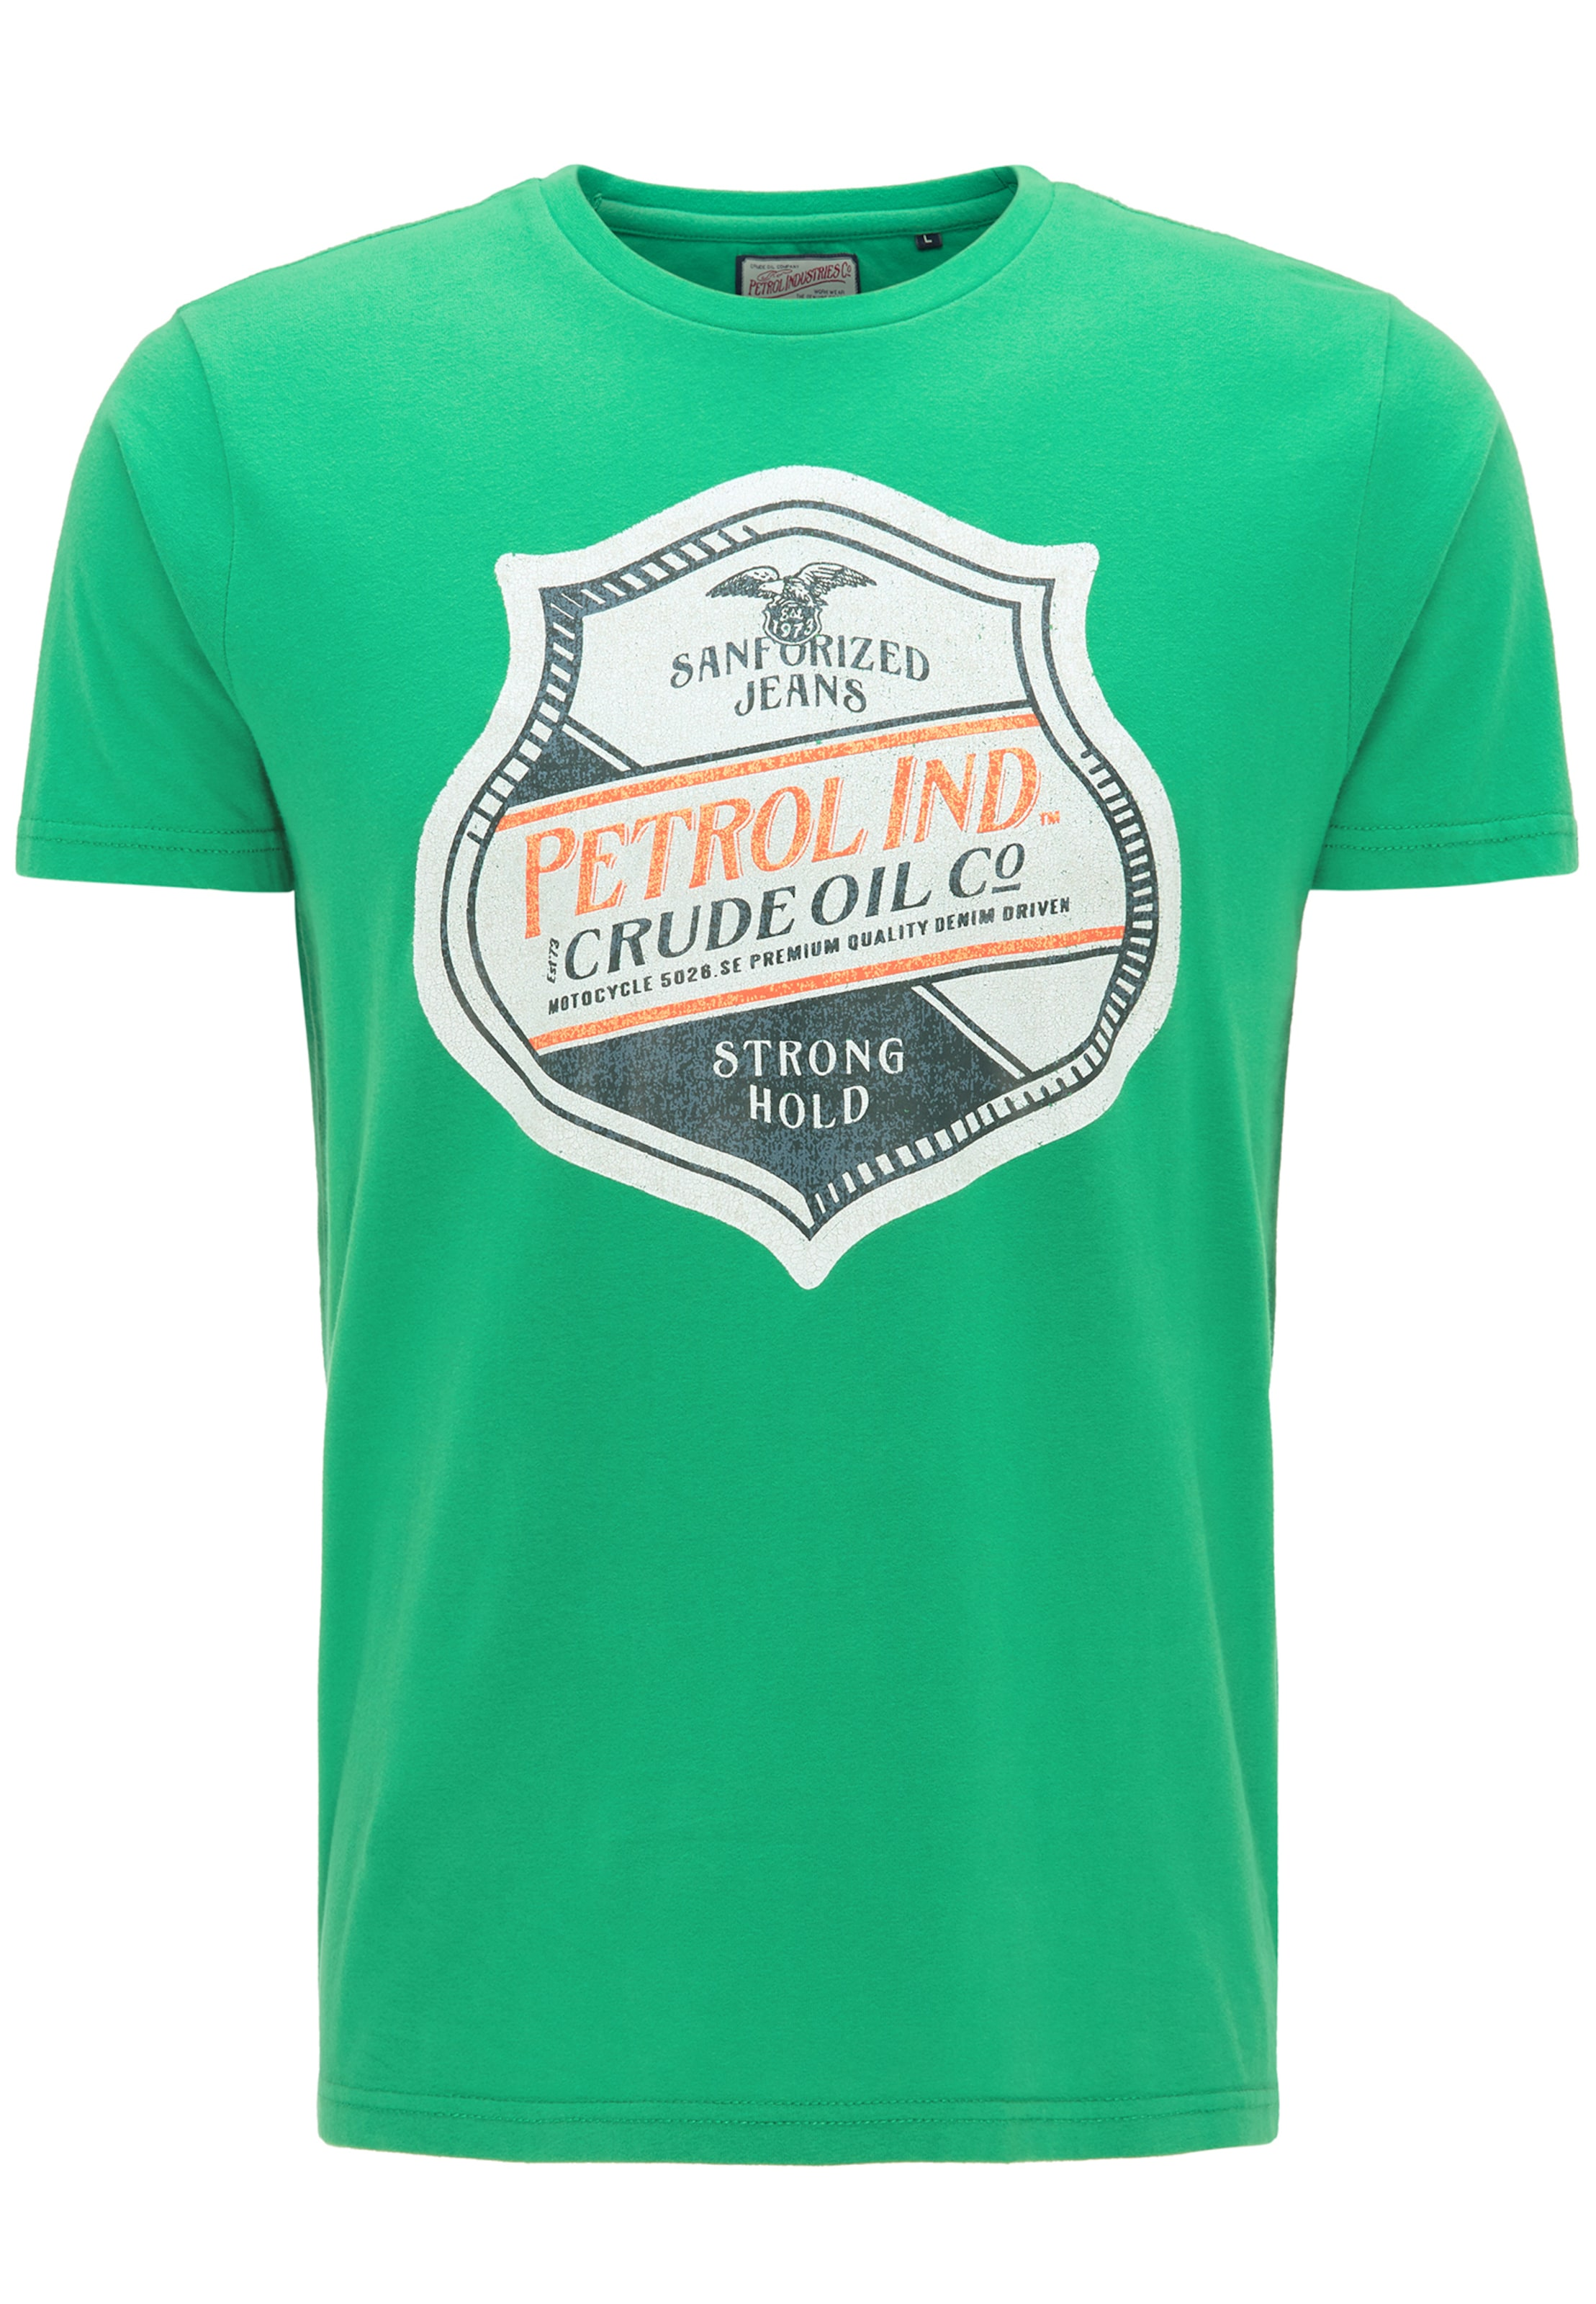 Petrol FoncéVert shirt T En Bleu Orange Industries Clair Blanc CxdoBreW